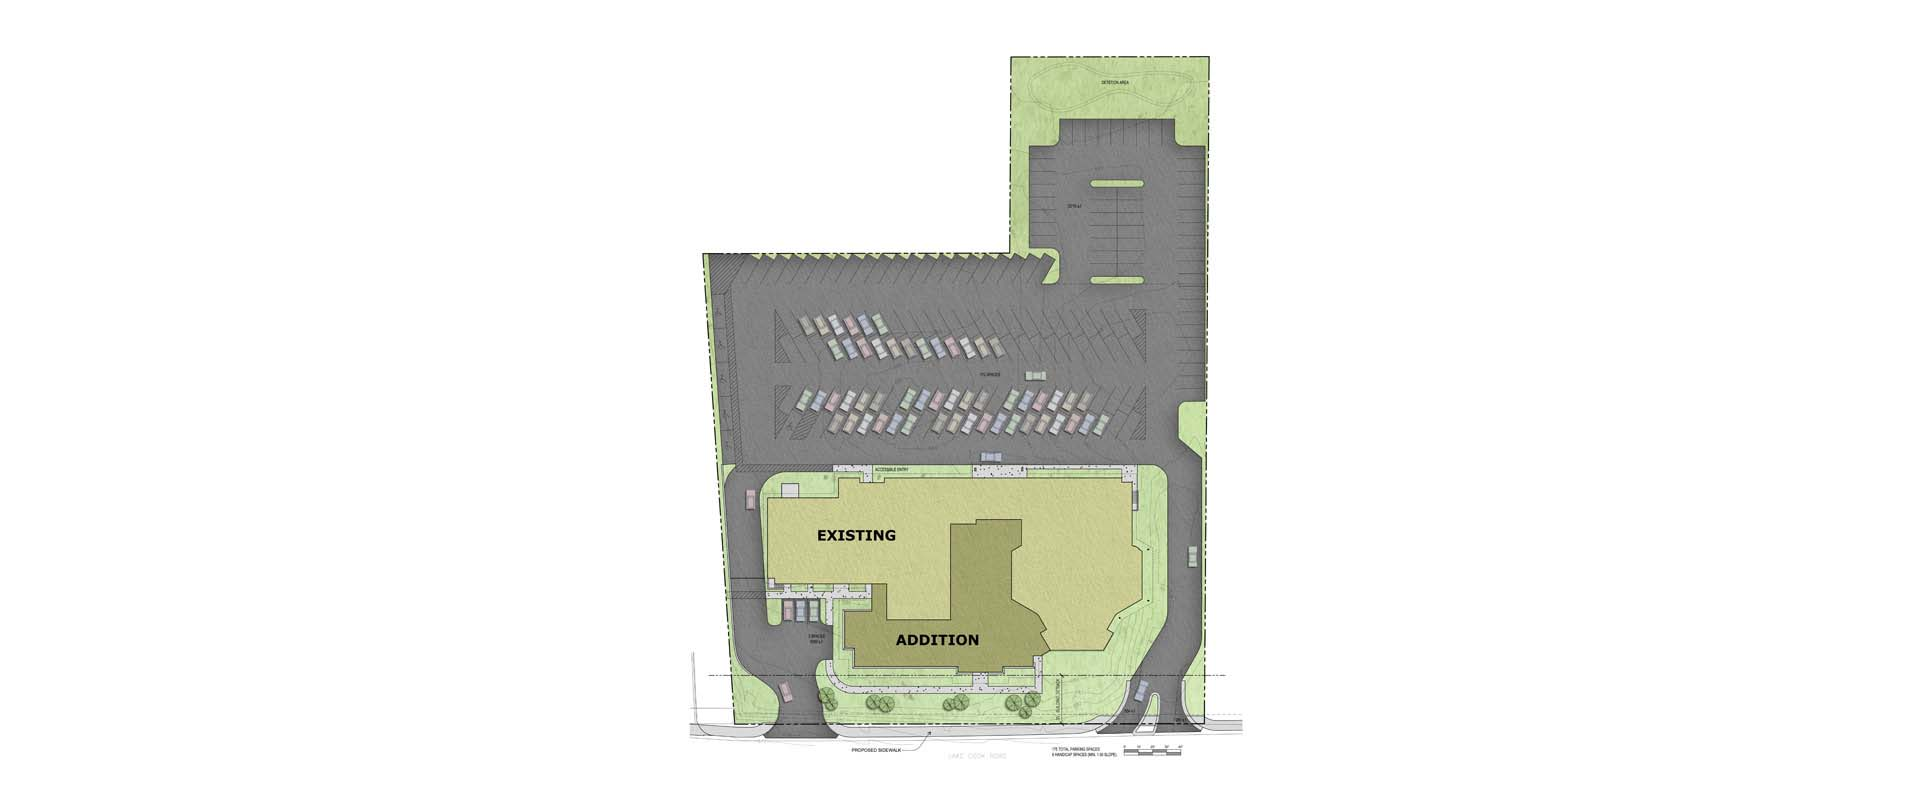 Church Office Addition Architectural Plan